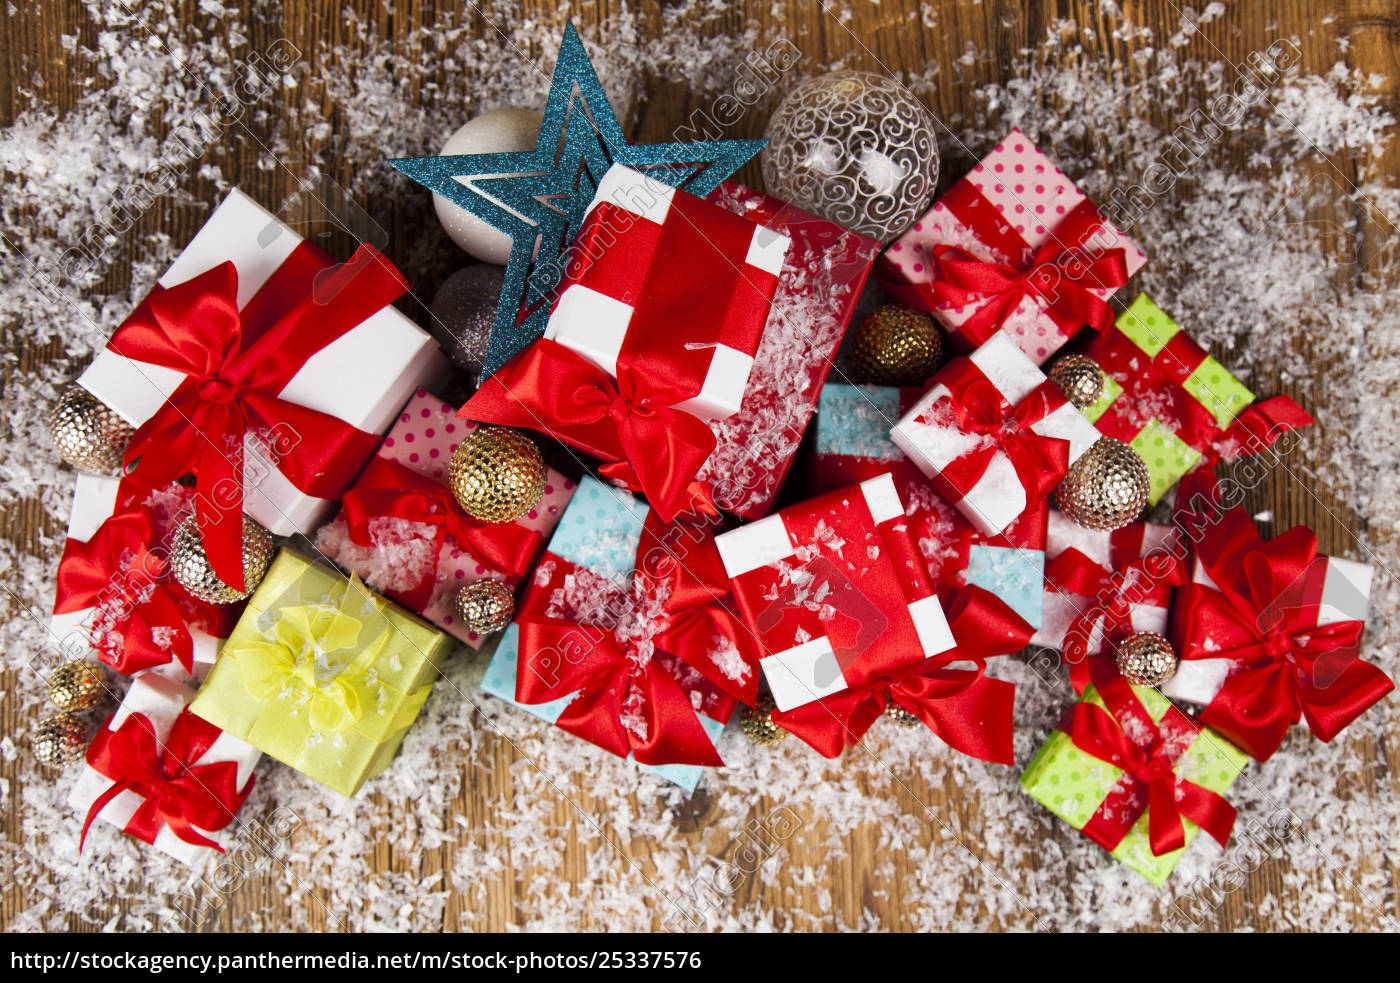 christmastime, celebration, , gift, box, with, red - 25337576